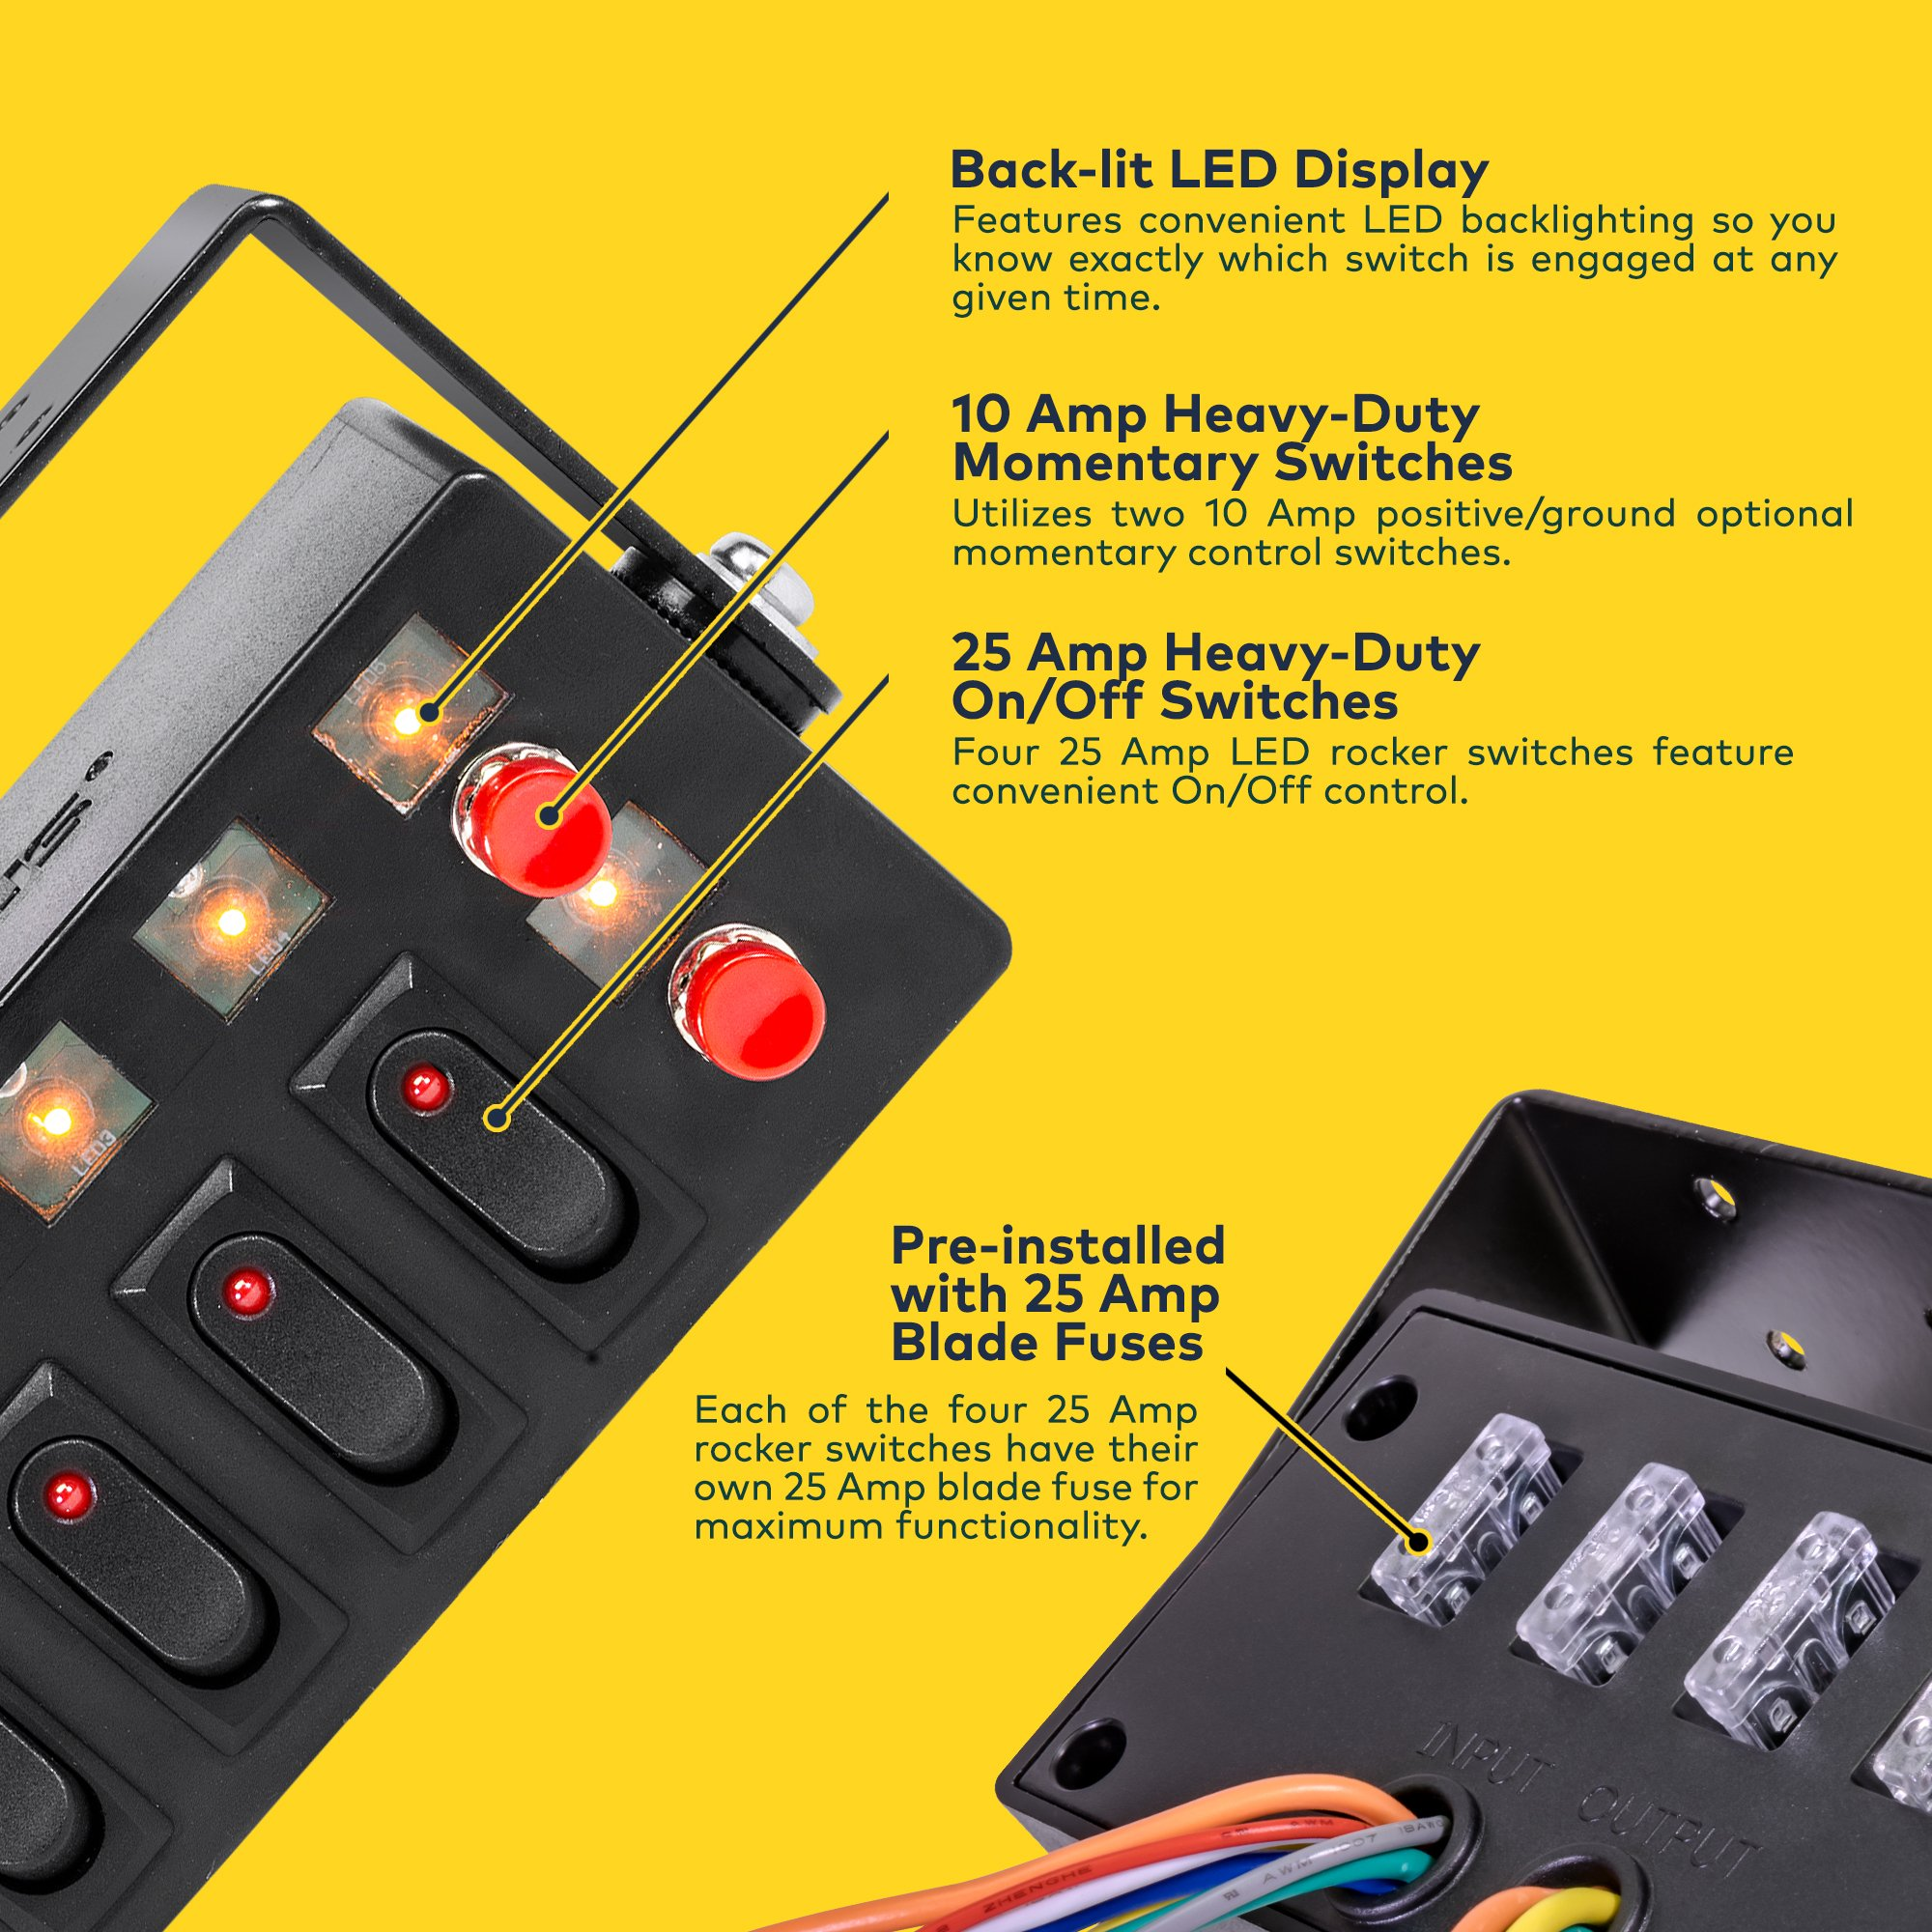 Lamphus Swbx42 Led Backlit Switch Box 4x 25a On Off Rocker Switches Fuse 2x Momentary Adjustable Swivel Bracket Perfect For Police Firefighter